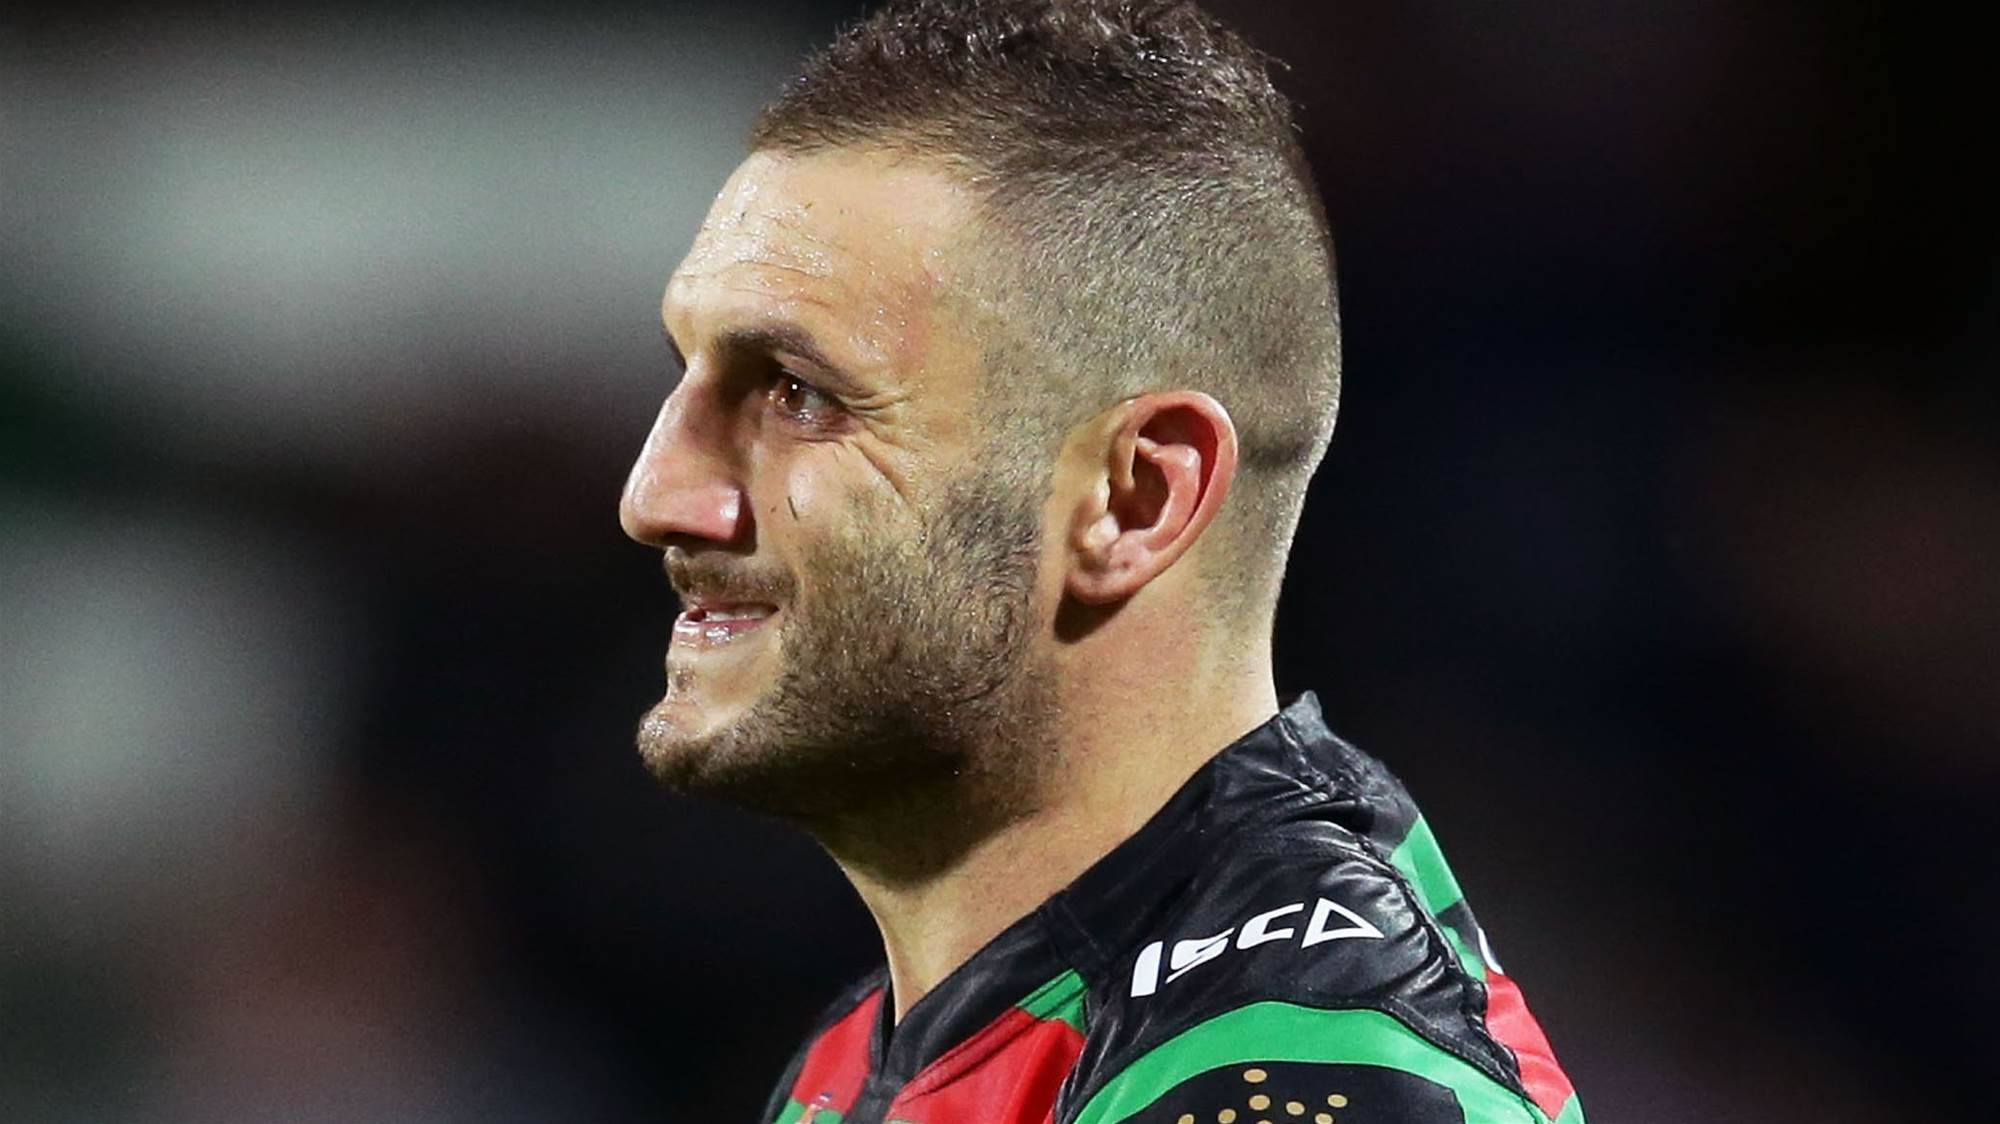 Farah snubbed for Origin